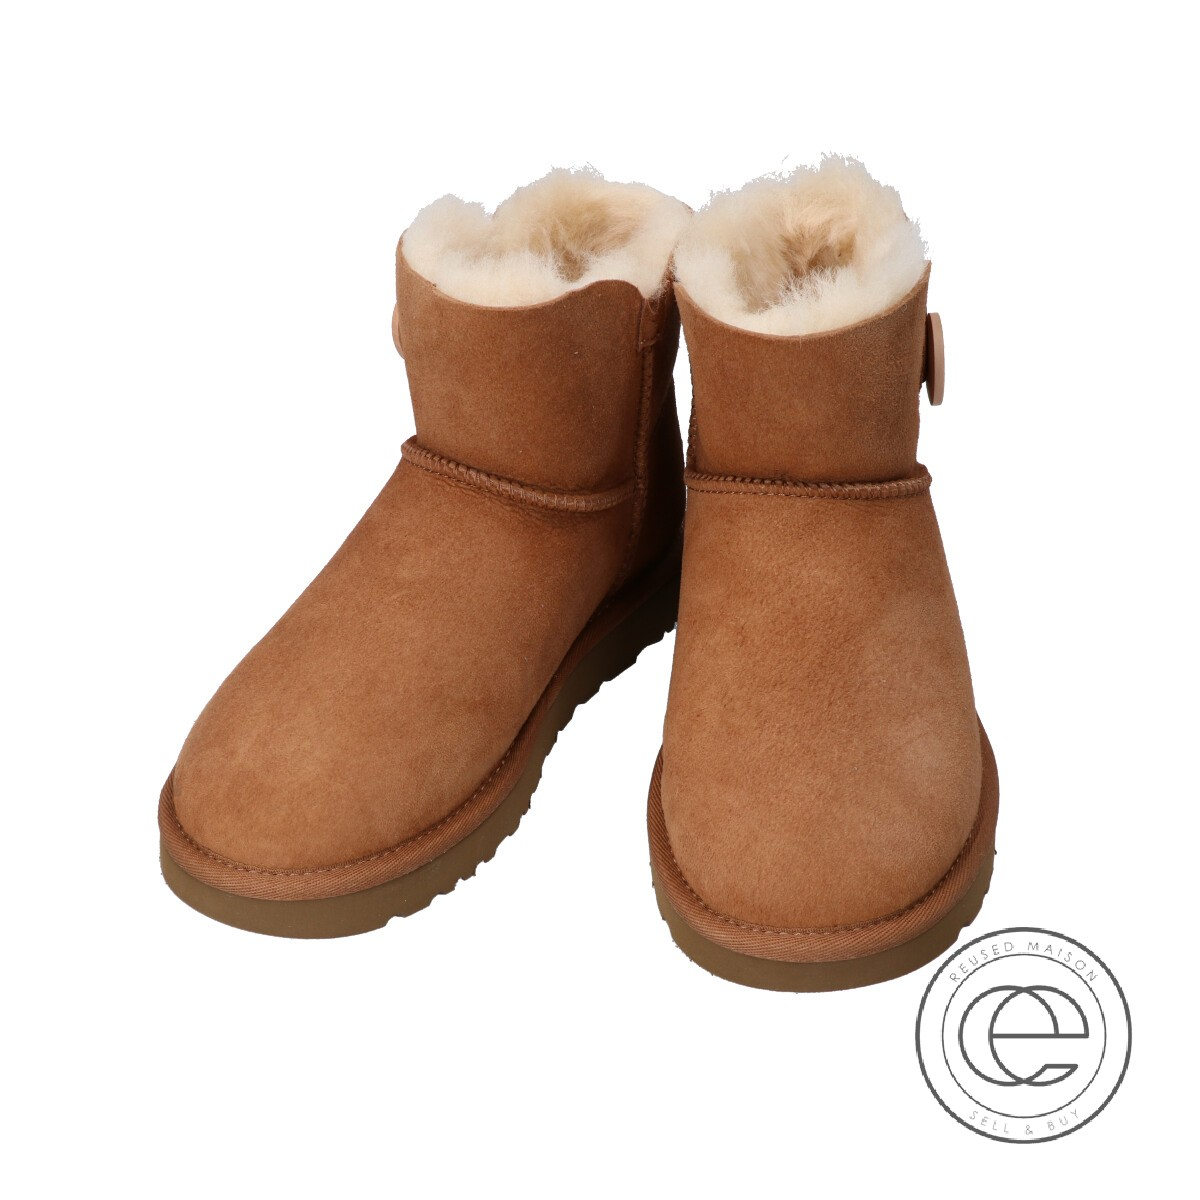 a4233374c56 UGG アグ 1016422 MINI BAILEY BUTTON II mini-Bailey button 2 mouton boots US6  CHESTNUT Lady's